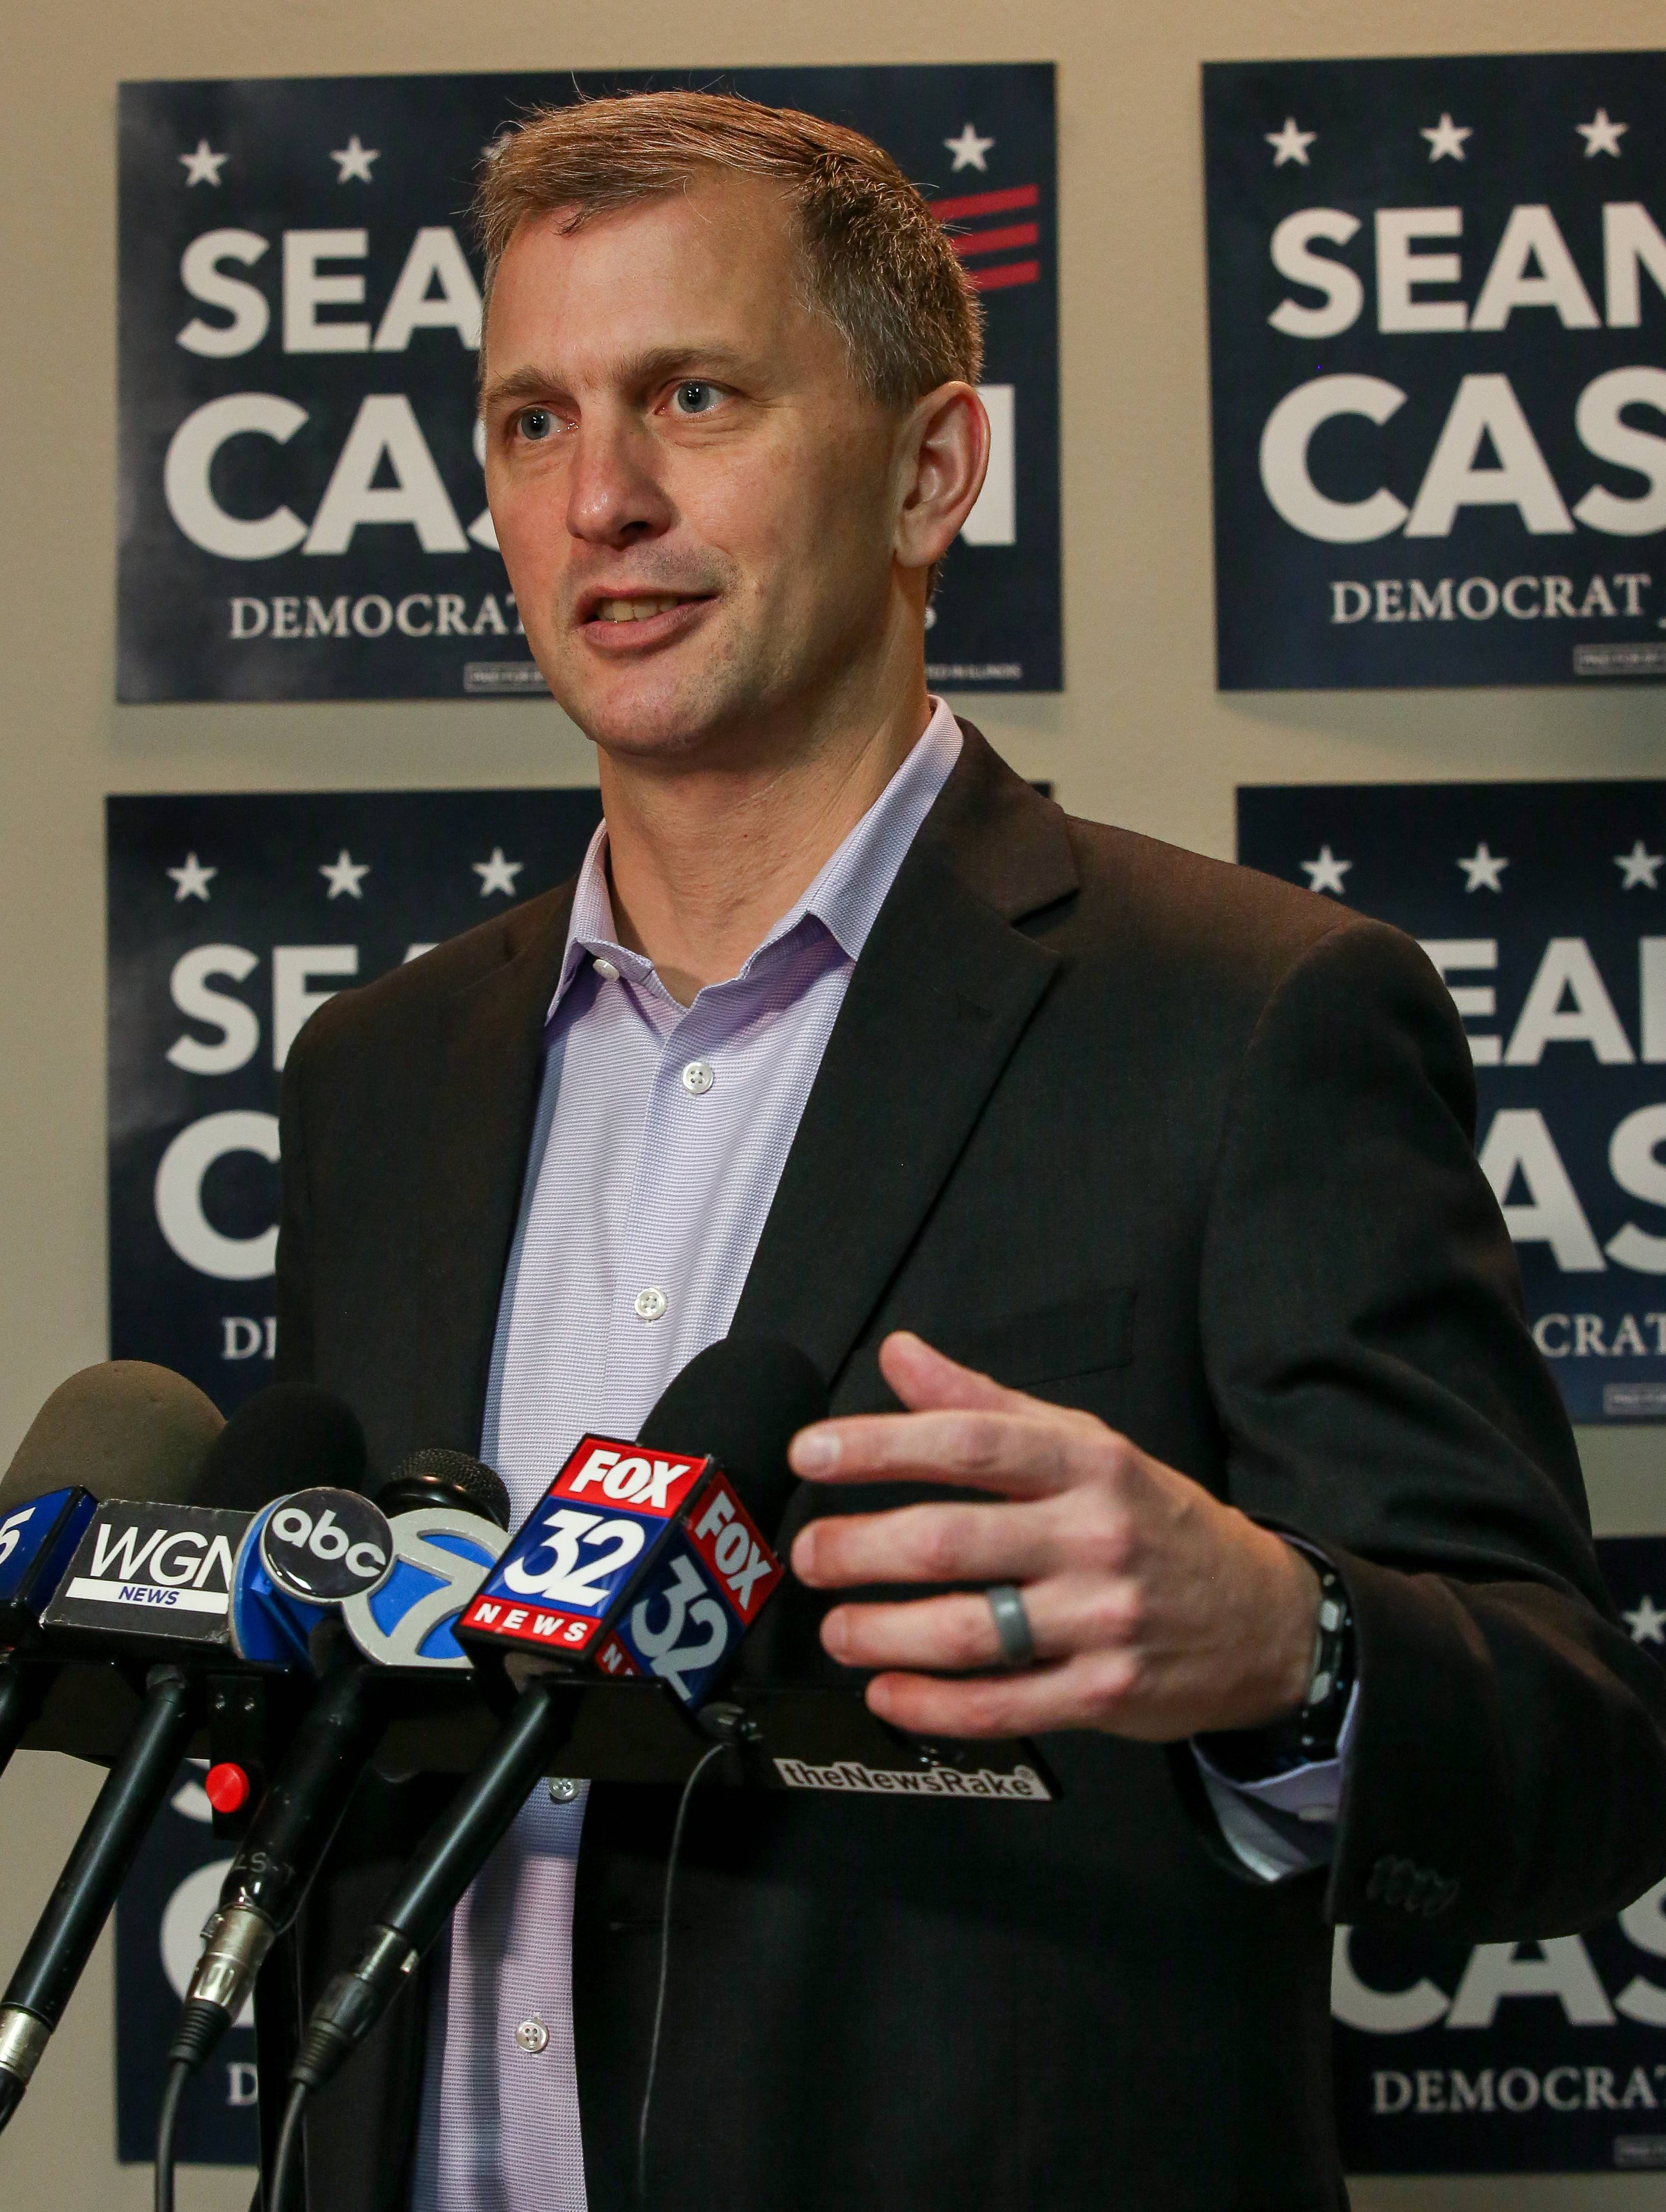 Democrat Sean Casten answers questions Wednesday in Downers Grove about how he unseated Republican Rep. Peter Roskam to win in the 6th U.S. Congressional District.